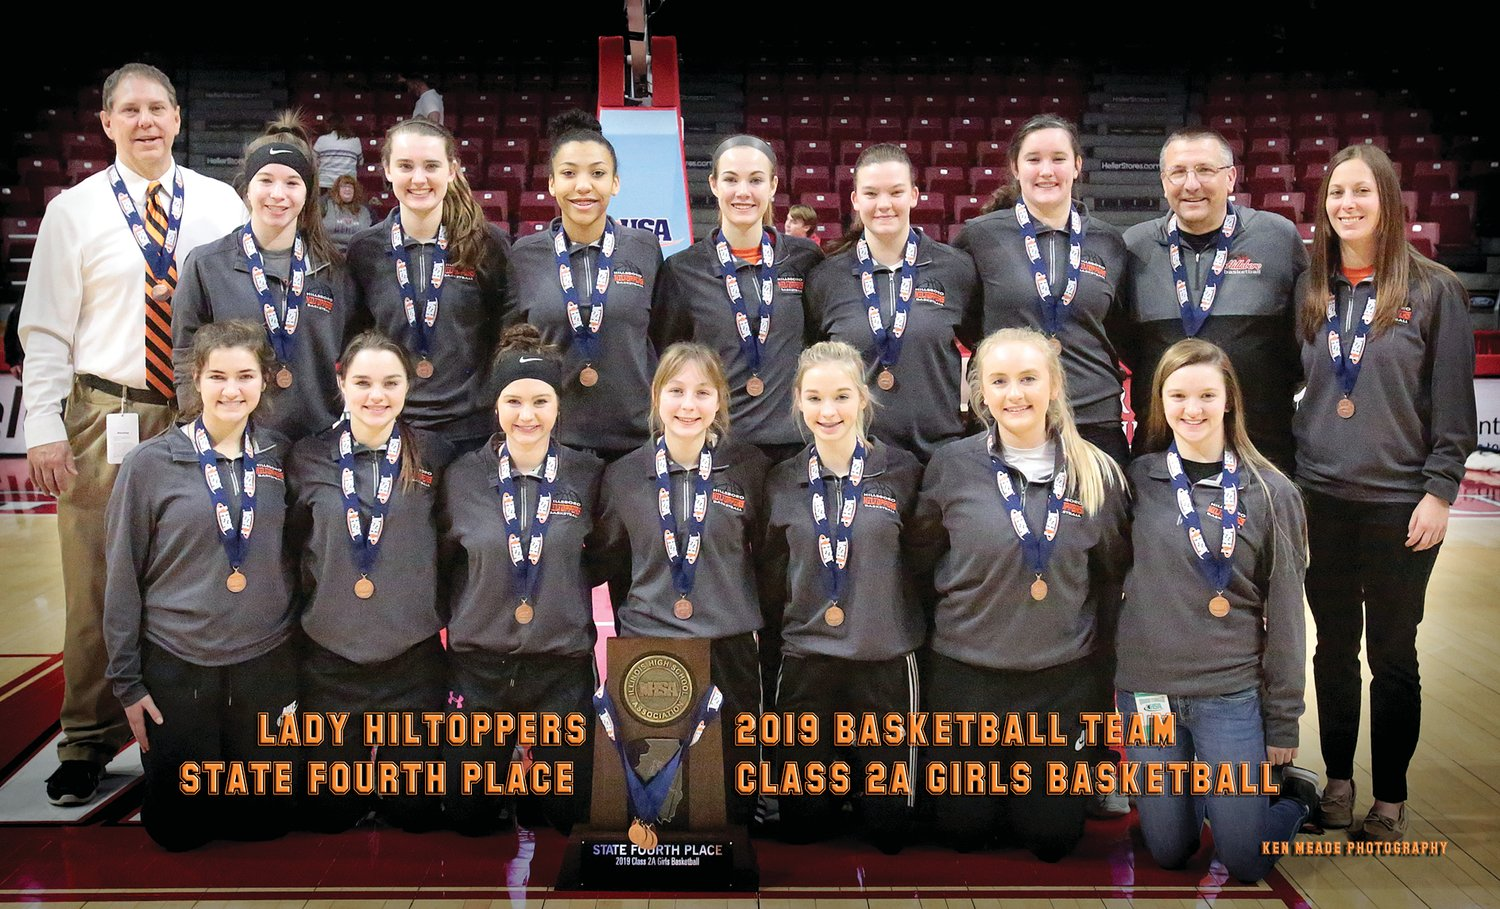 Members of the Hillsboro High School girls basketball team pose with their fourth place trophy at the IHSA State Tournament at Redbird Arena in Normal after the championship game on Feb. 23. In front, from the left, are Emily Reynolds, Jade Scroggins, Sheridan Lyerla, Vanessa Compton, Maddy Rupert, Claire Tester and manager Glory Wilson. In the back row are Head Coach Bret Tuetken, Haley Major, Sammi Matoush, Nikya Harston, Kylie Meier, Aubry Rupert, Maci Blankenship, Assistant Coach Bob Allen and Assistant Coach Paige Cullison.